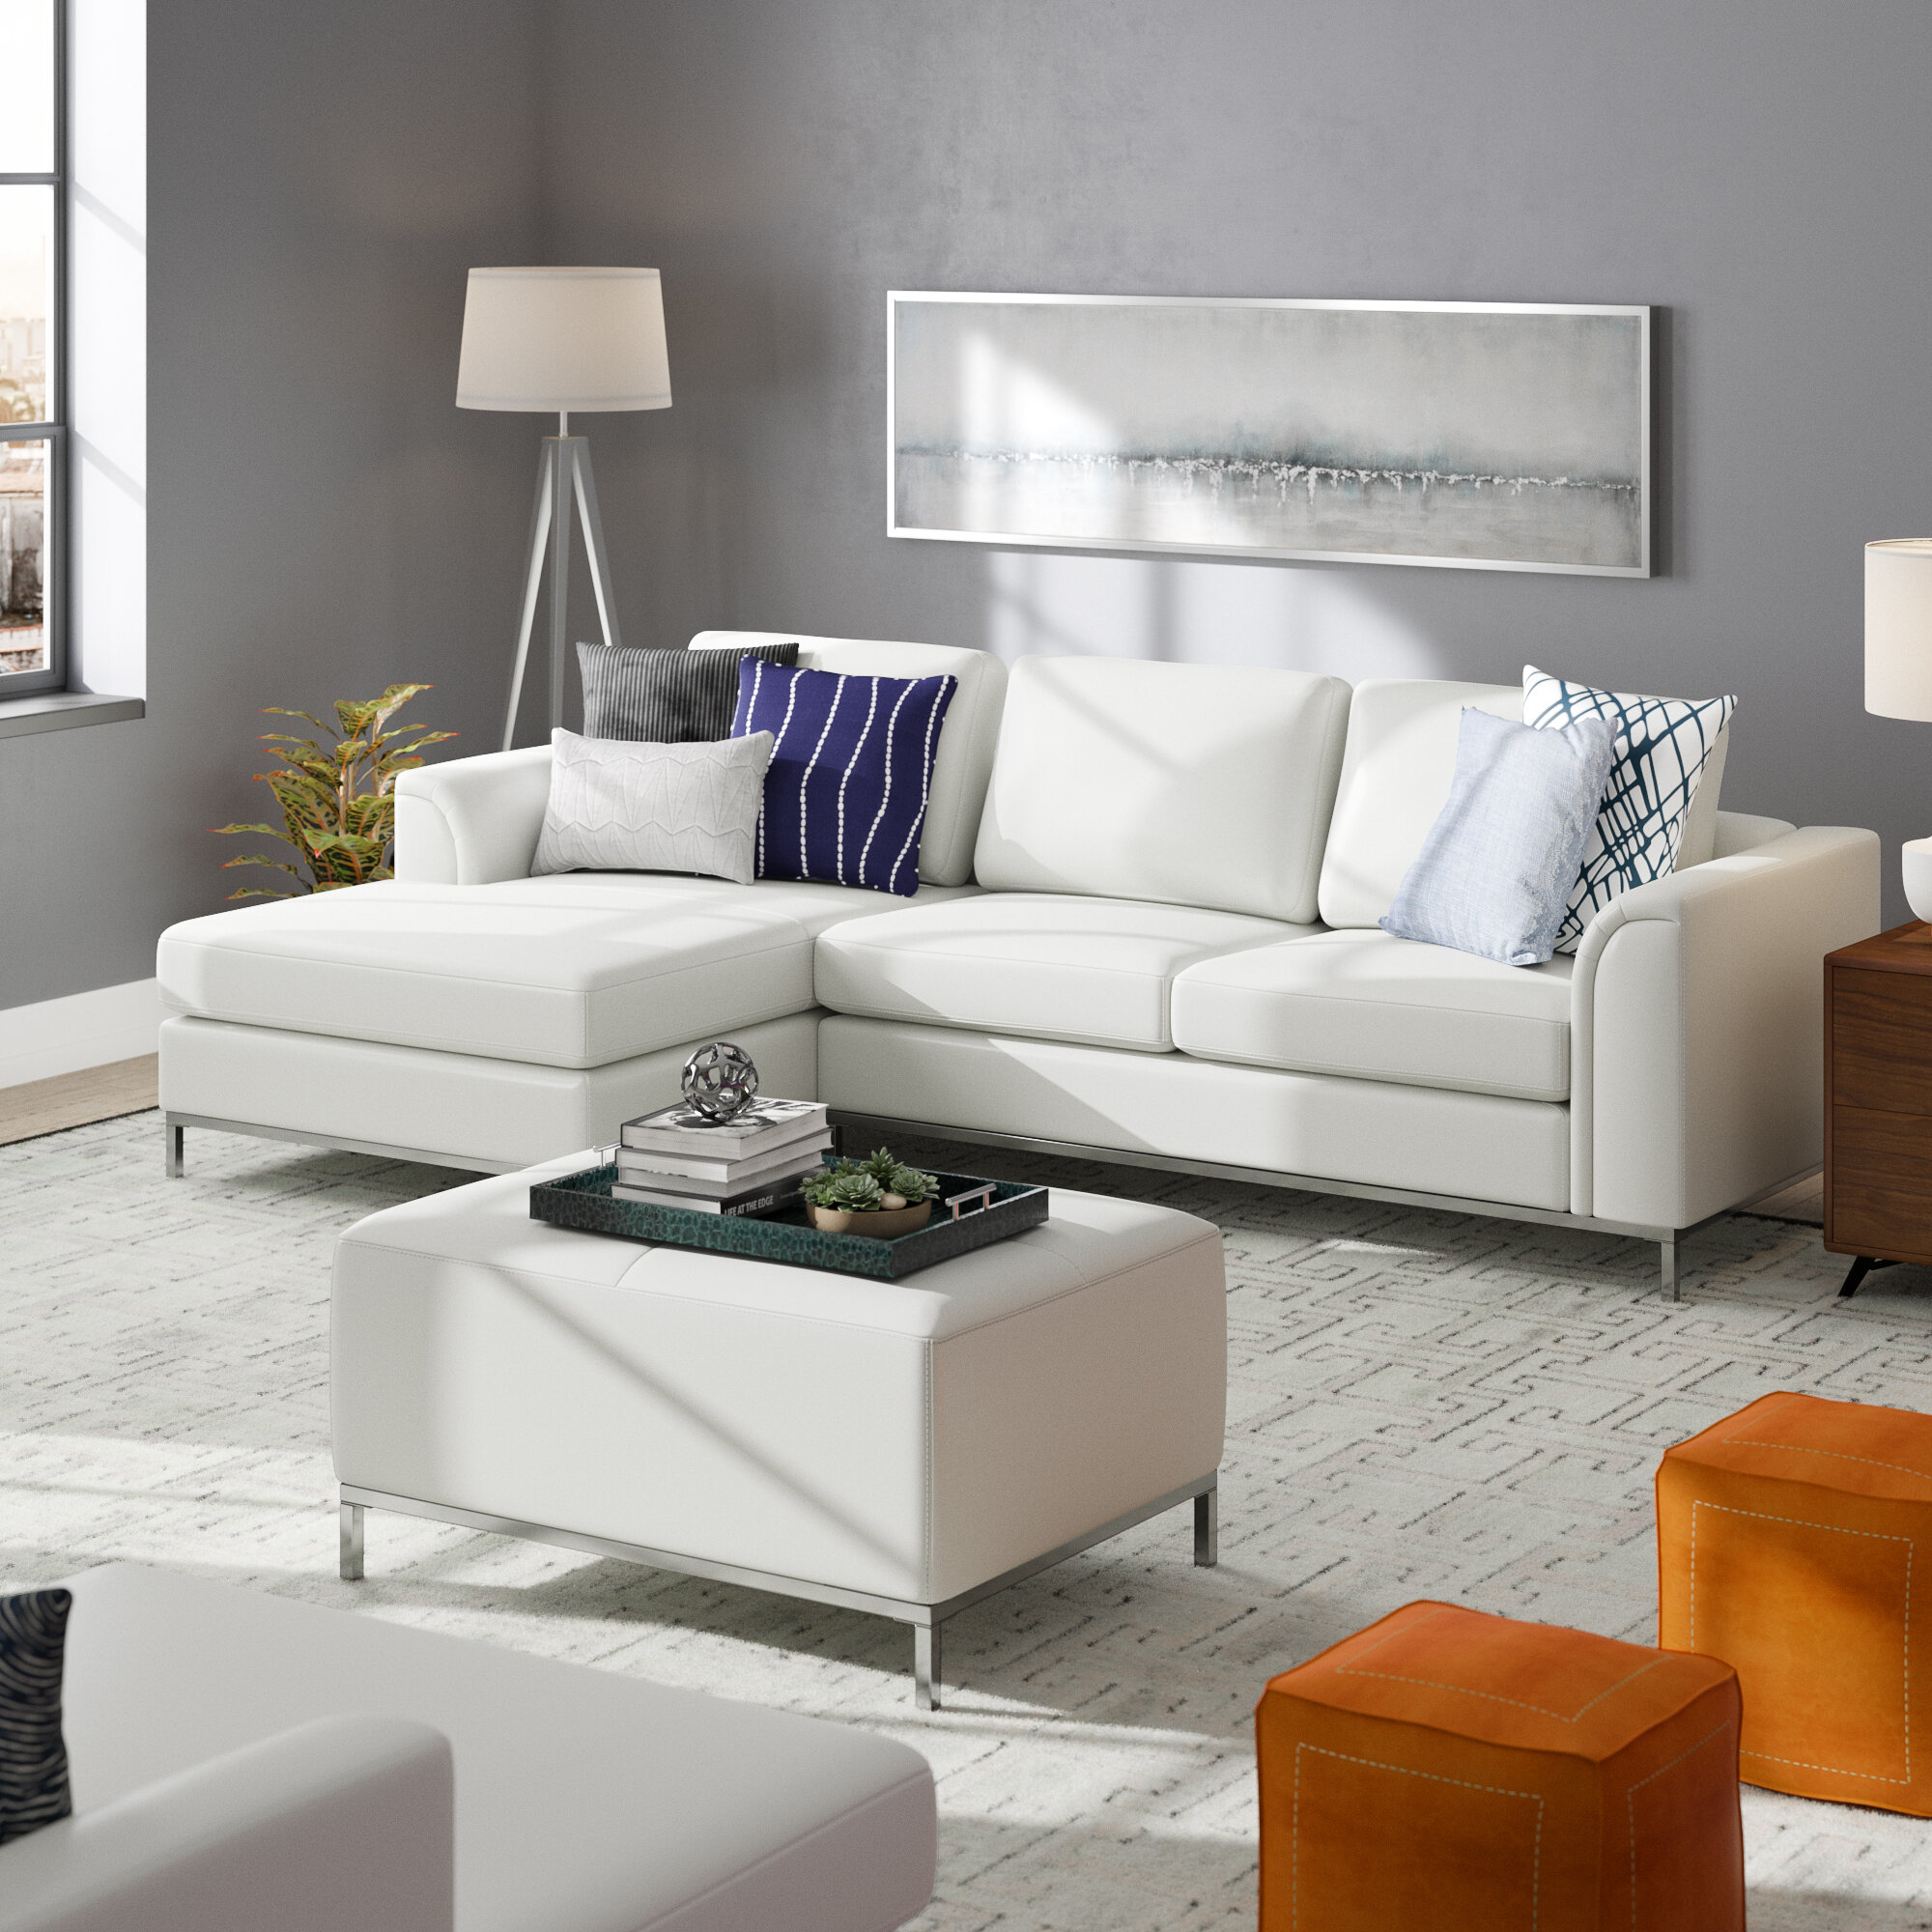 Terrific Catlett Leather Sectional With Ottoman Alphanode Cool Chair Designs And Ideas Alphanodeonline